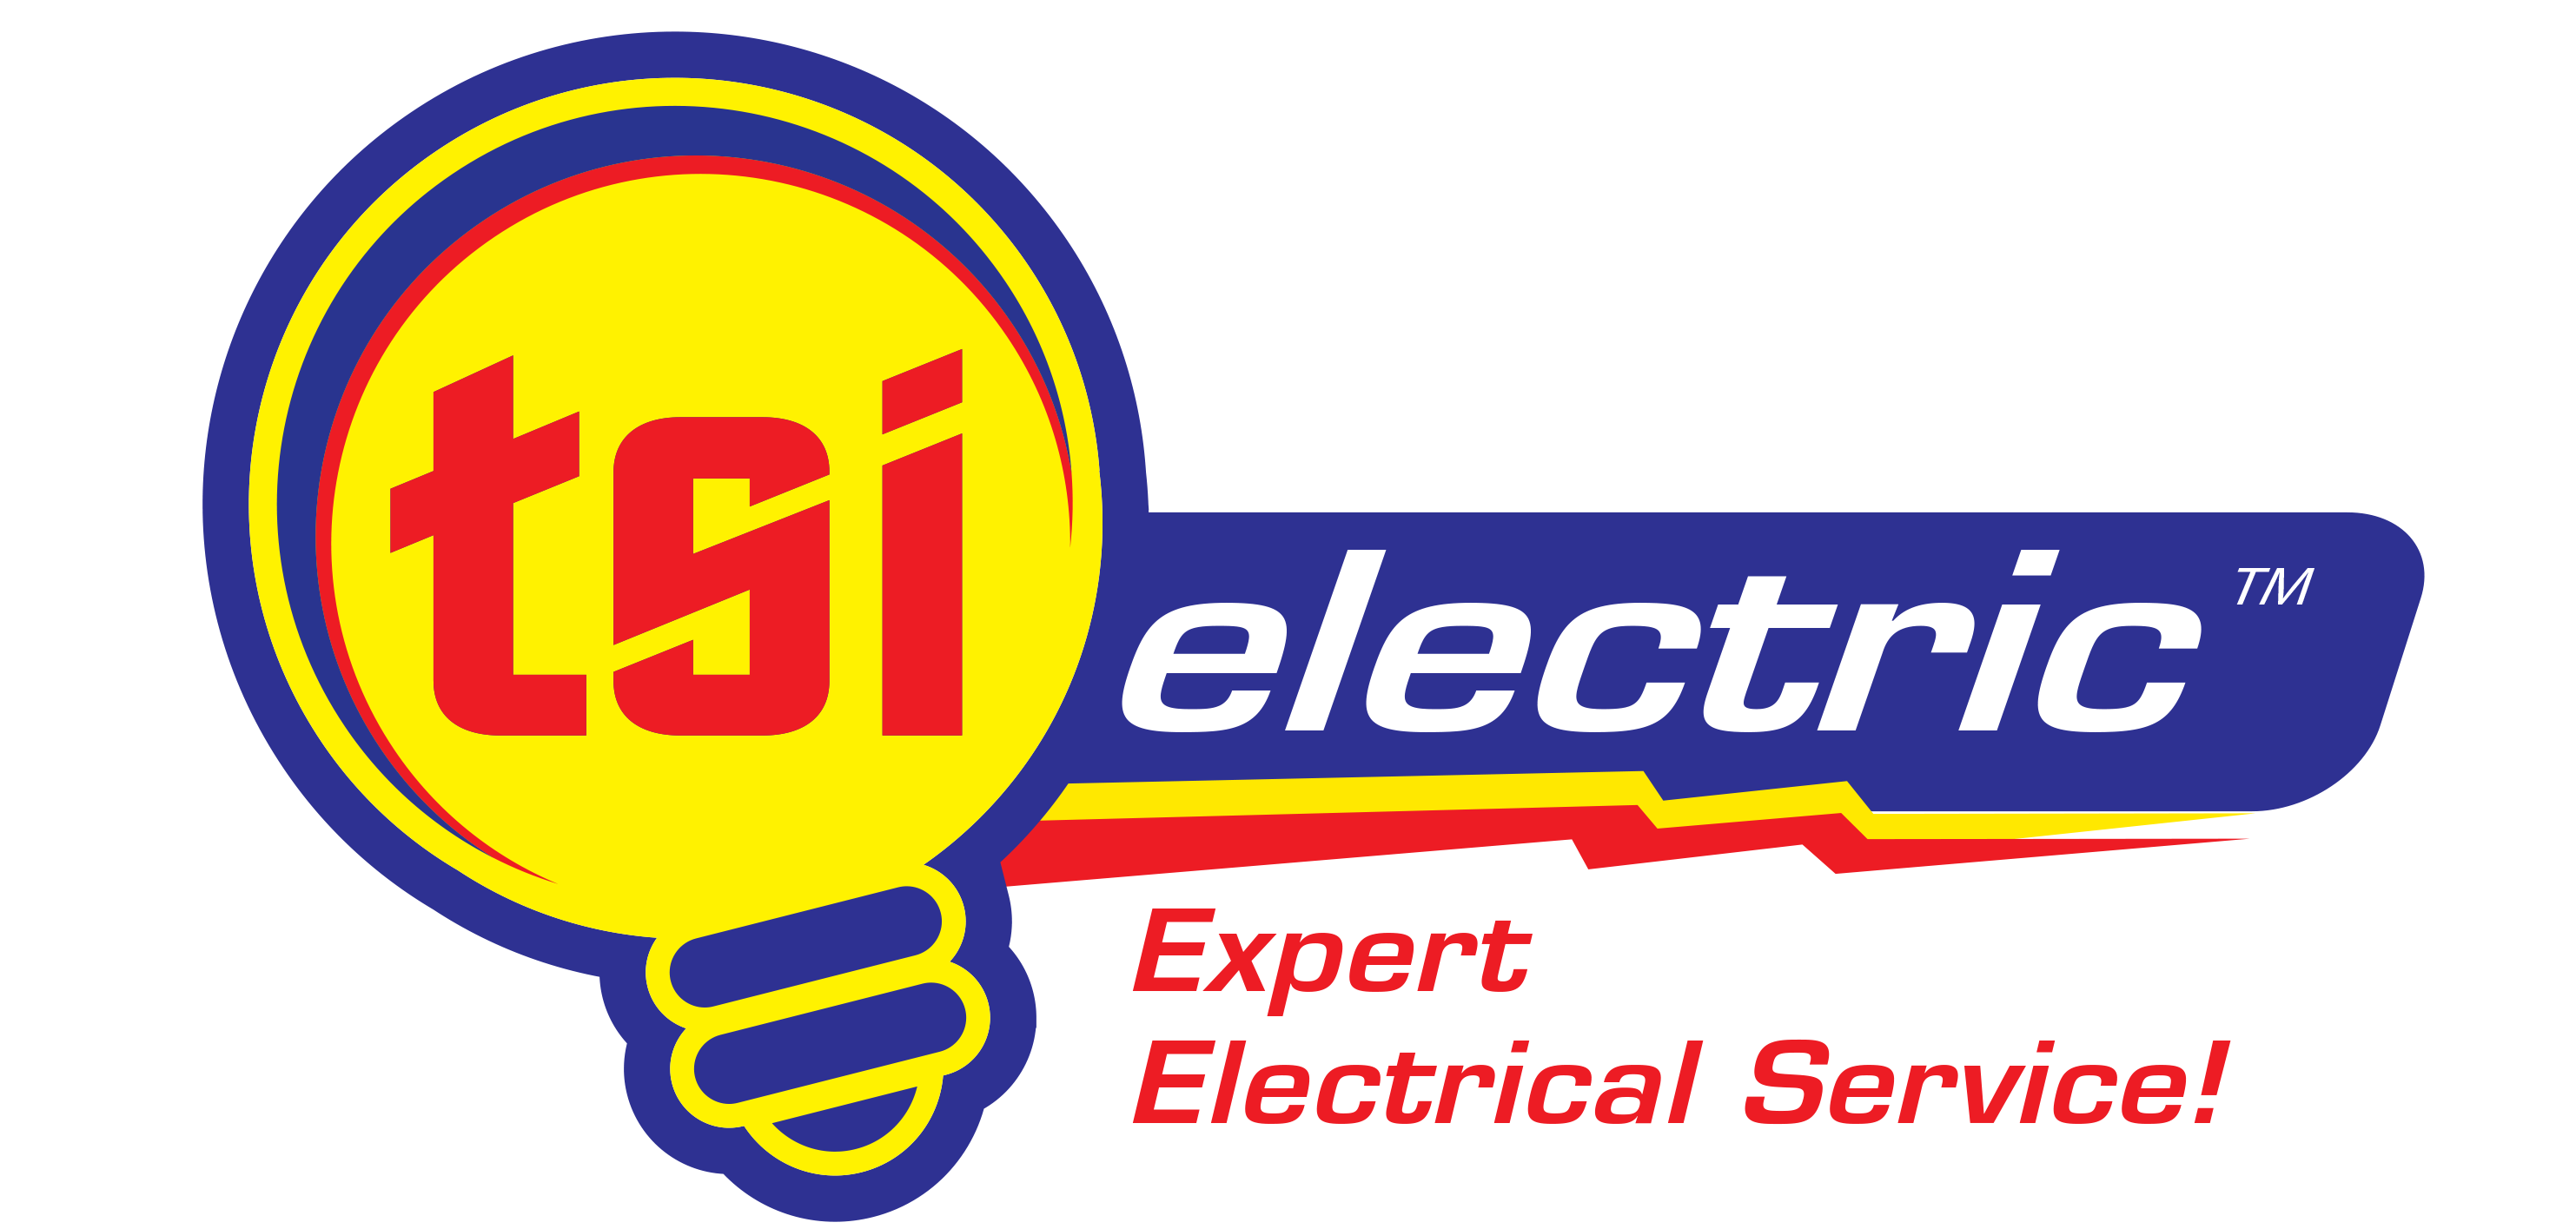 Expert Electrical Service